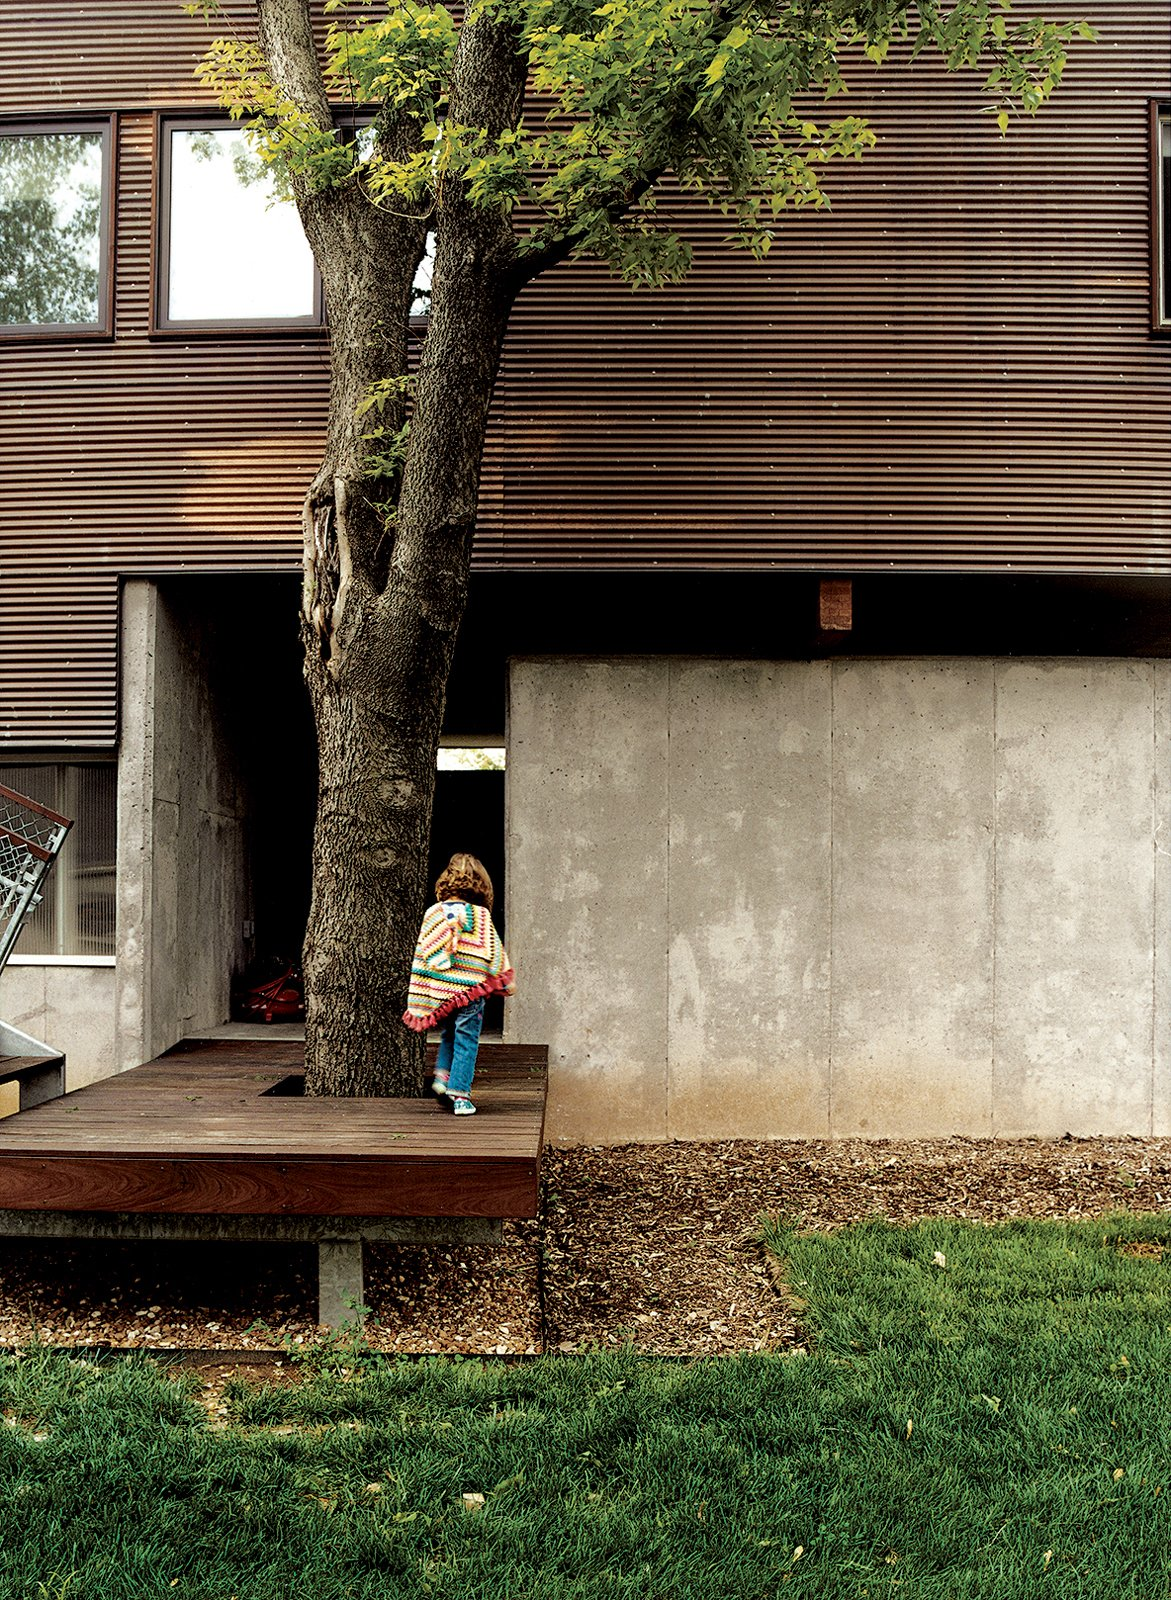 """Outdoor, Grass, Small Patio, Porch, Deck, Wood Patio, Porch, Deck, and Trees Rather than a traditional frame construction, the Kansas City, Missouri, home of architect Jamie Darnell and Michele was built using SIPs (structural insulated panels) that came in four-by-eight-foot sections in kit form. With ladderlike steps leading to the front door, the place feels like an ultrapolished tree house. The arboreal atmosphere was intentional. """"We're tree people,"""" Jamie says. Jamie built the decking, of ipe, to accommodate a tree by the entrance to the garage.  Photo 1 of 9 in Affordable, SIP-Built Family Home in Kansas City"""